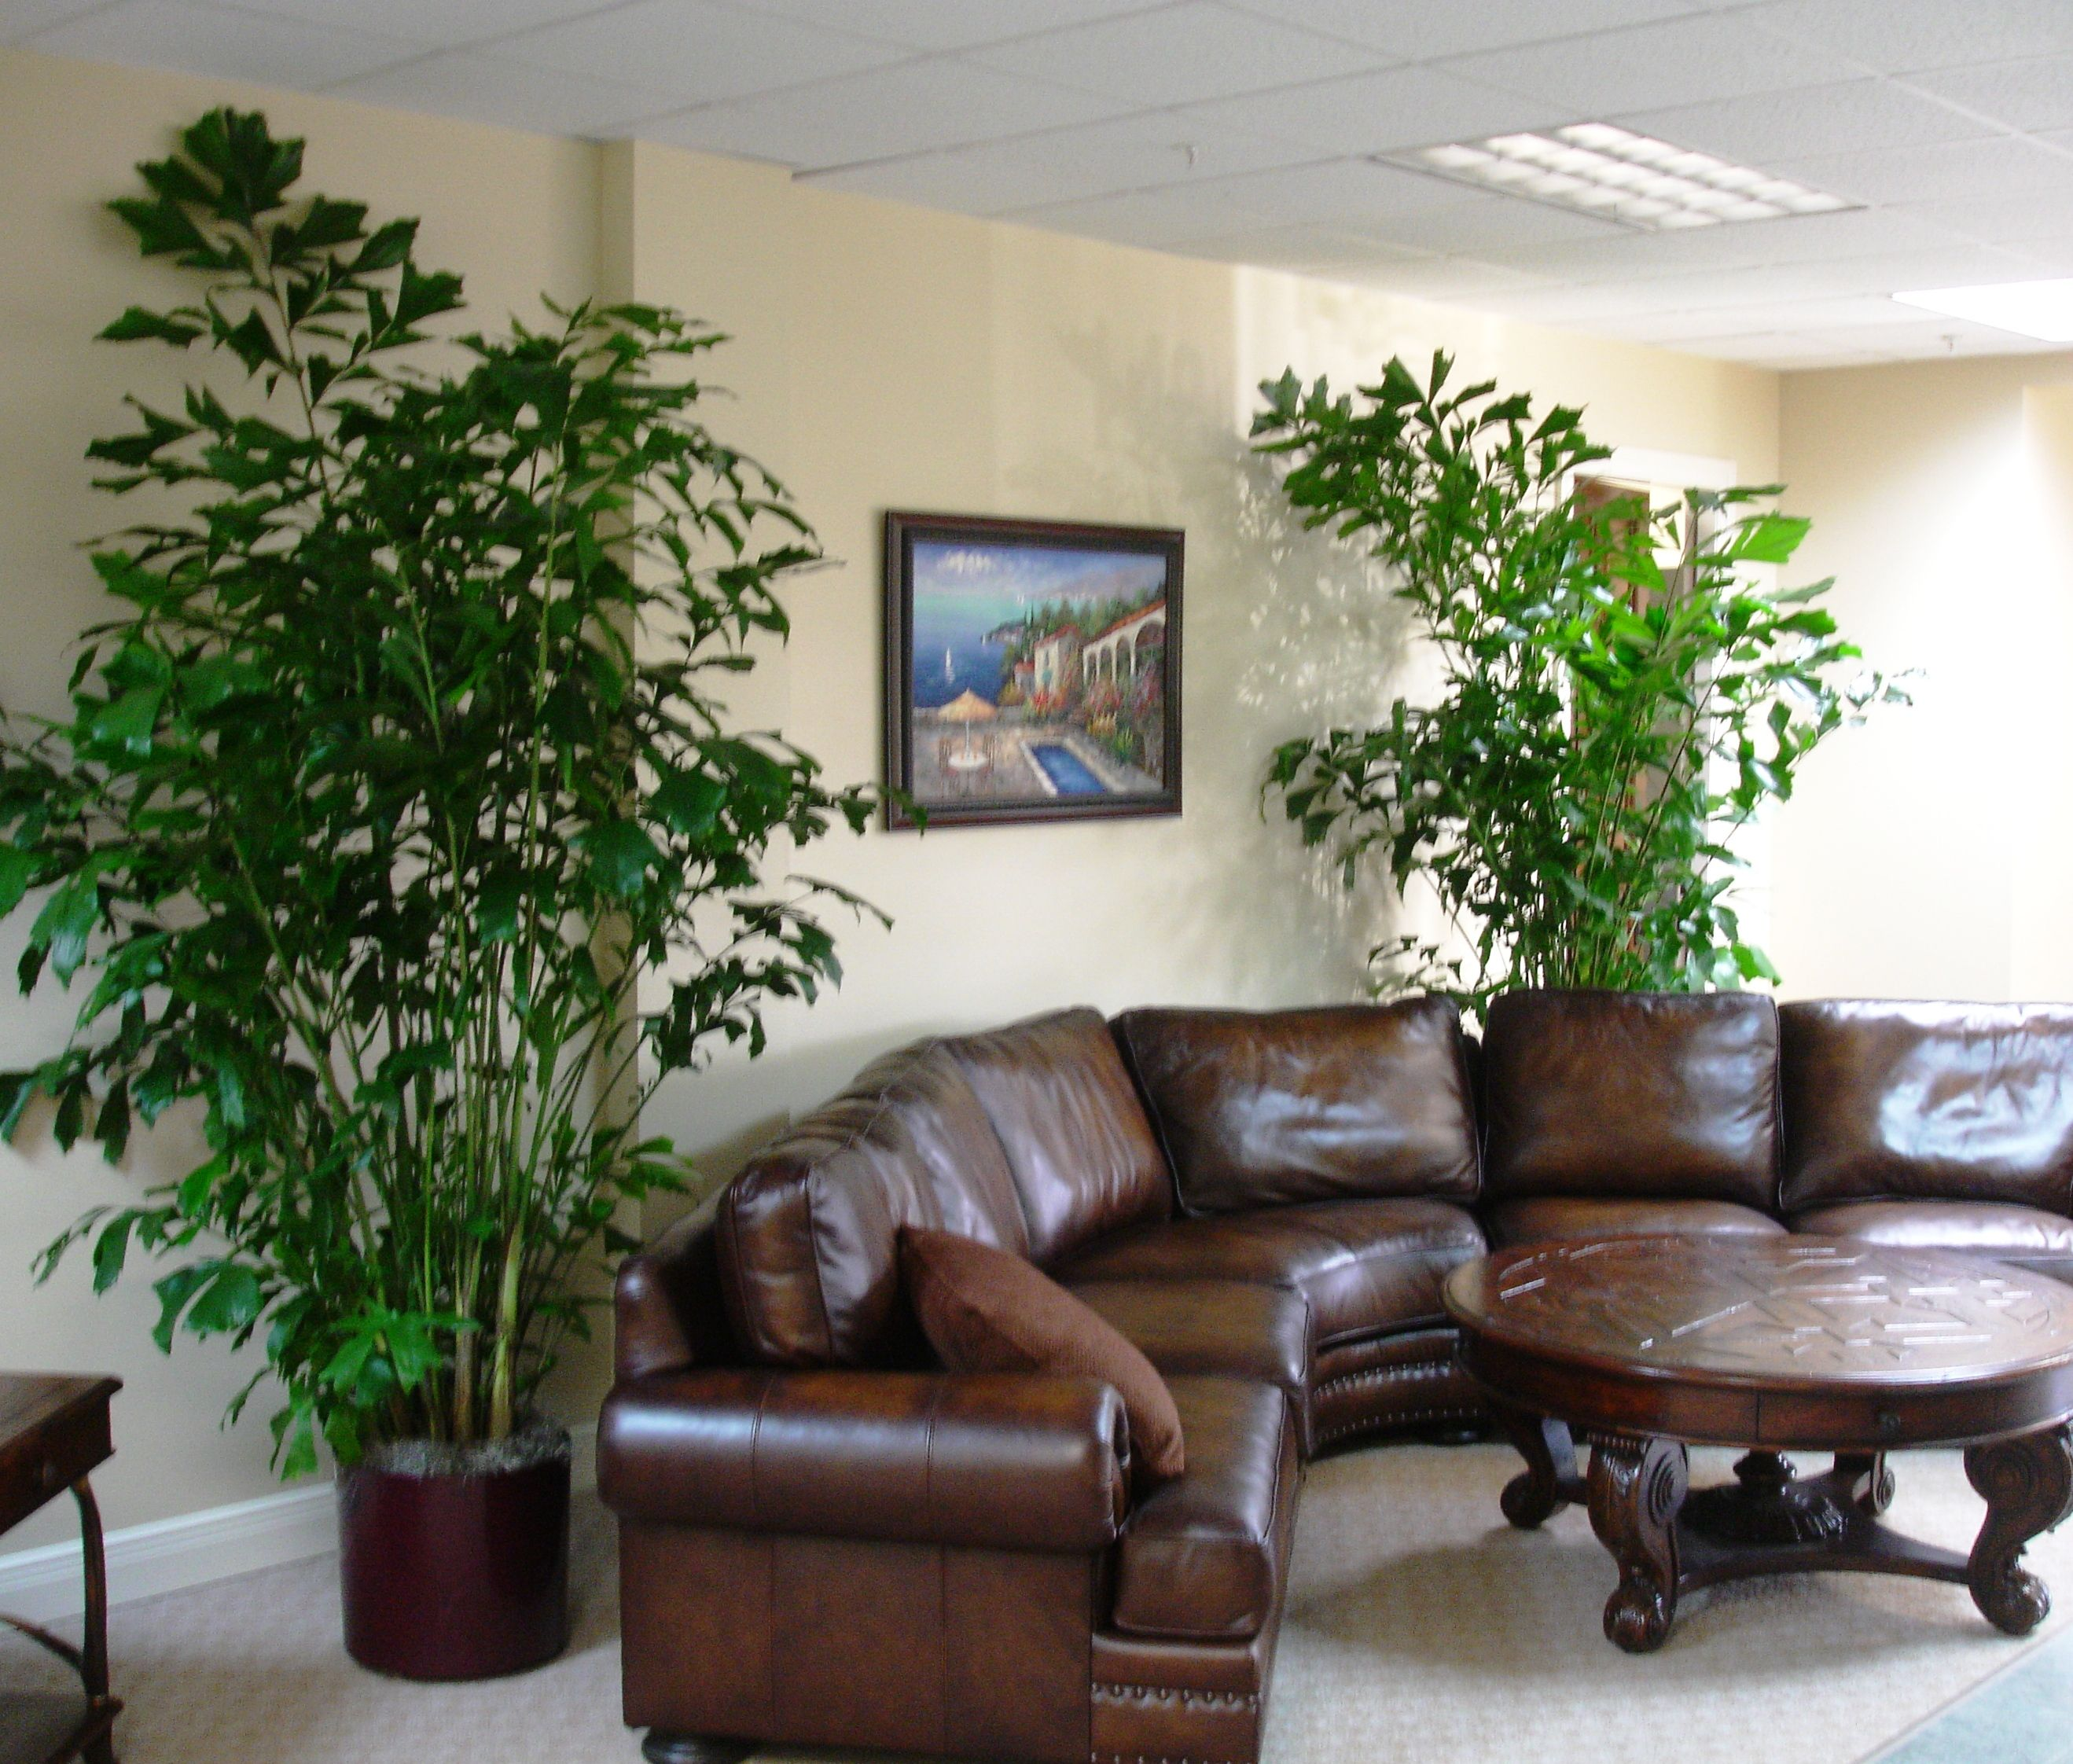 Masculine Decor fishtail palms do very well indoors, these soften up a masculine